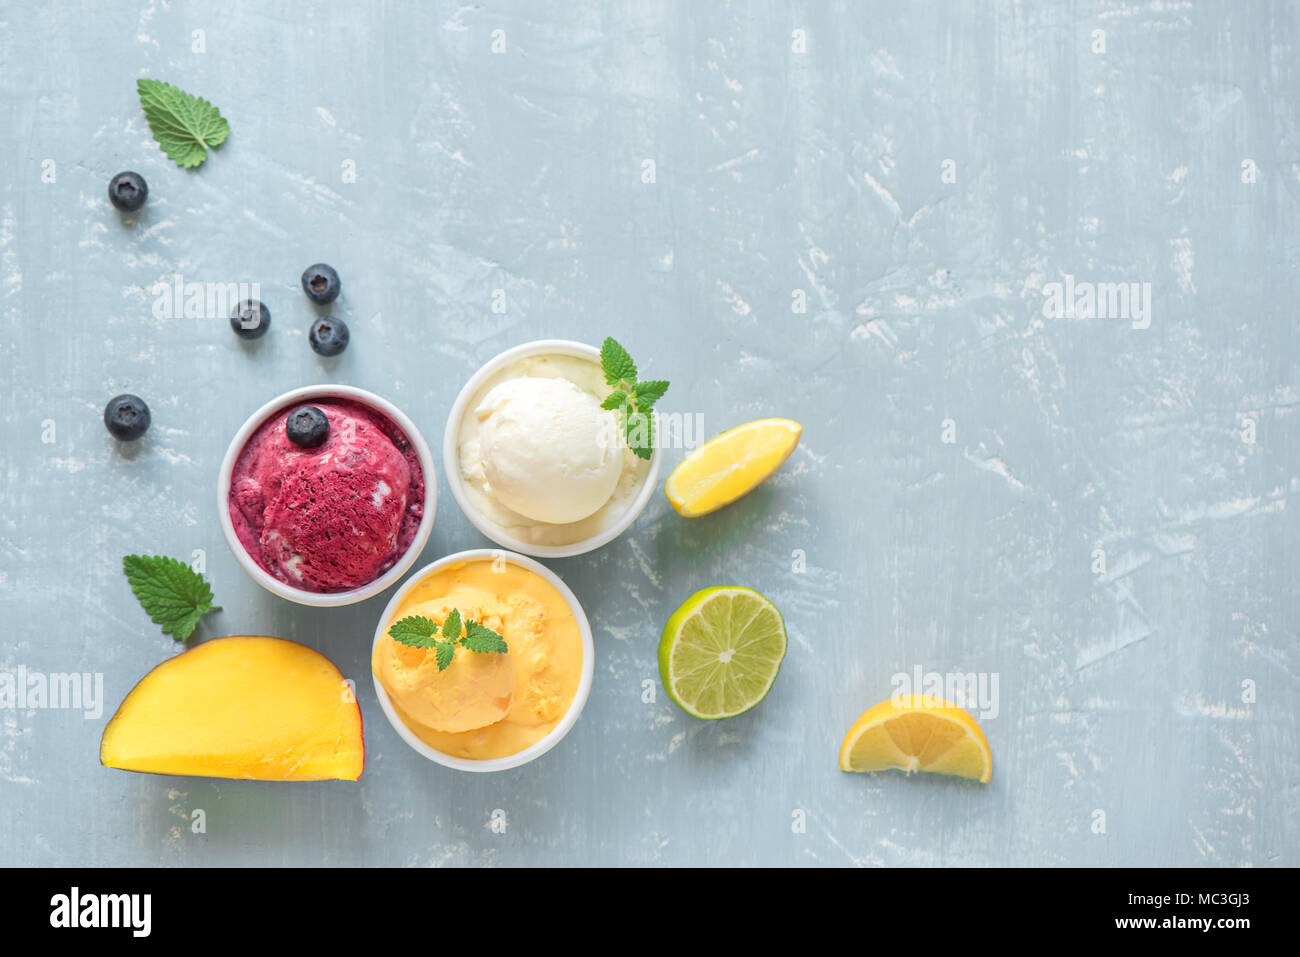 Three various fruit and berries ice creams on blue background, copy space. Frozen yogurt or ice cream with lemon, mango, blueberries - healthy summer  - Stock Image